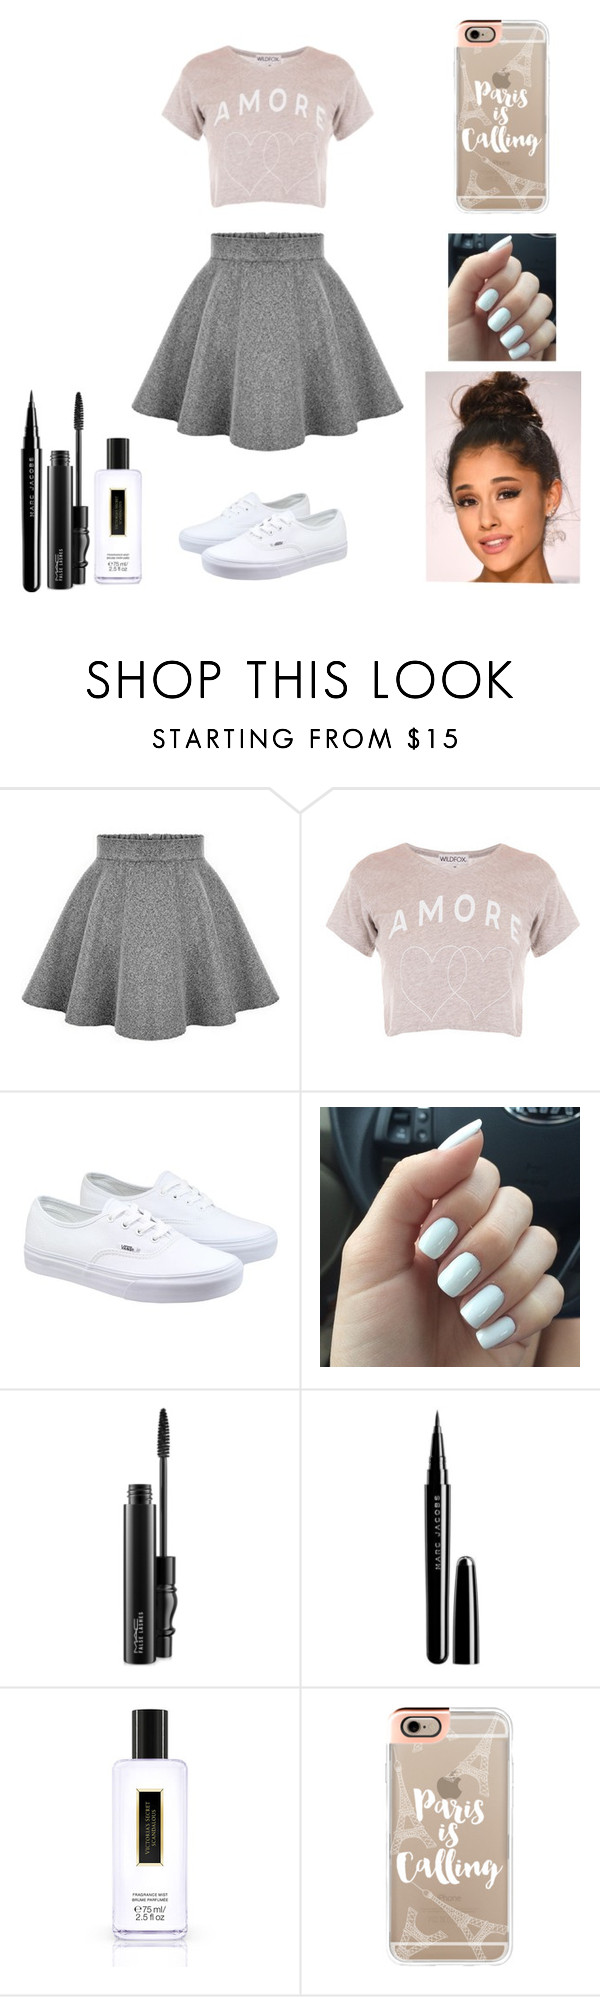 """""""All Around The World"""" by moniqueforeverz ❤ liked on Polyvore featuring Vans, MAC Cosmetics, Marc Jacobs, Victoria's Secret, Casetify, women's clothing, women's fashion, women, female and woman"""